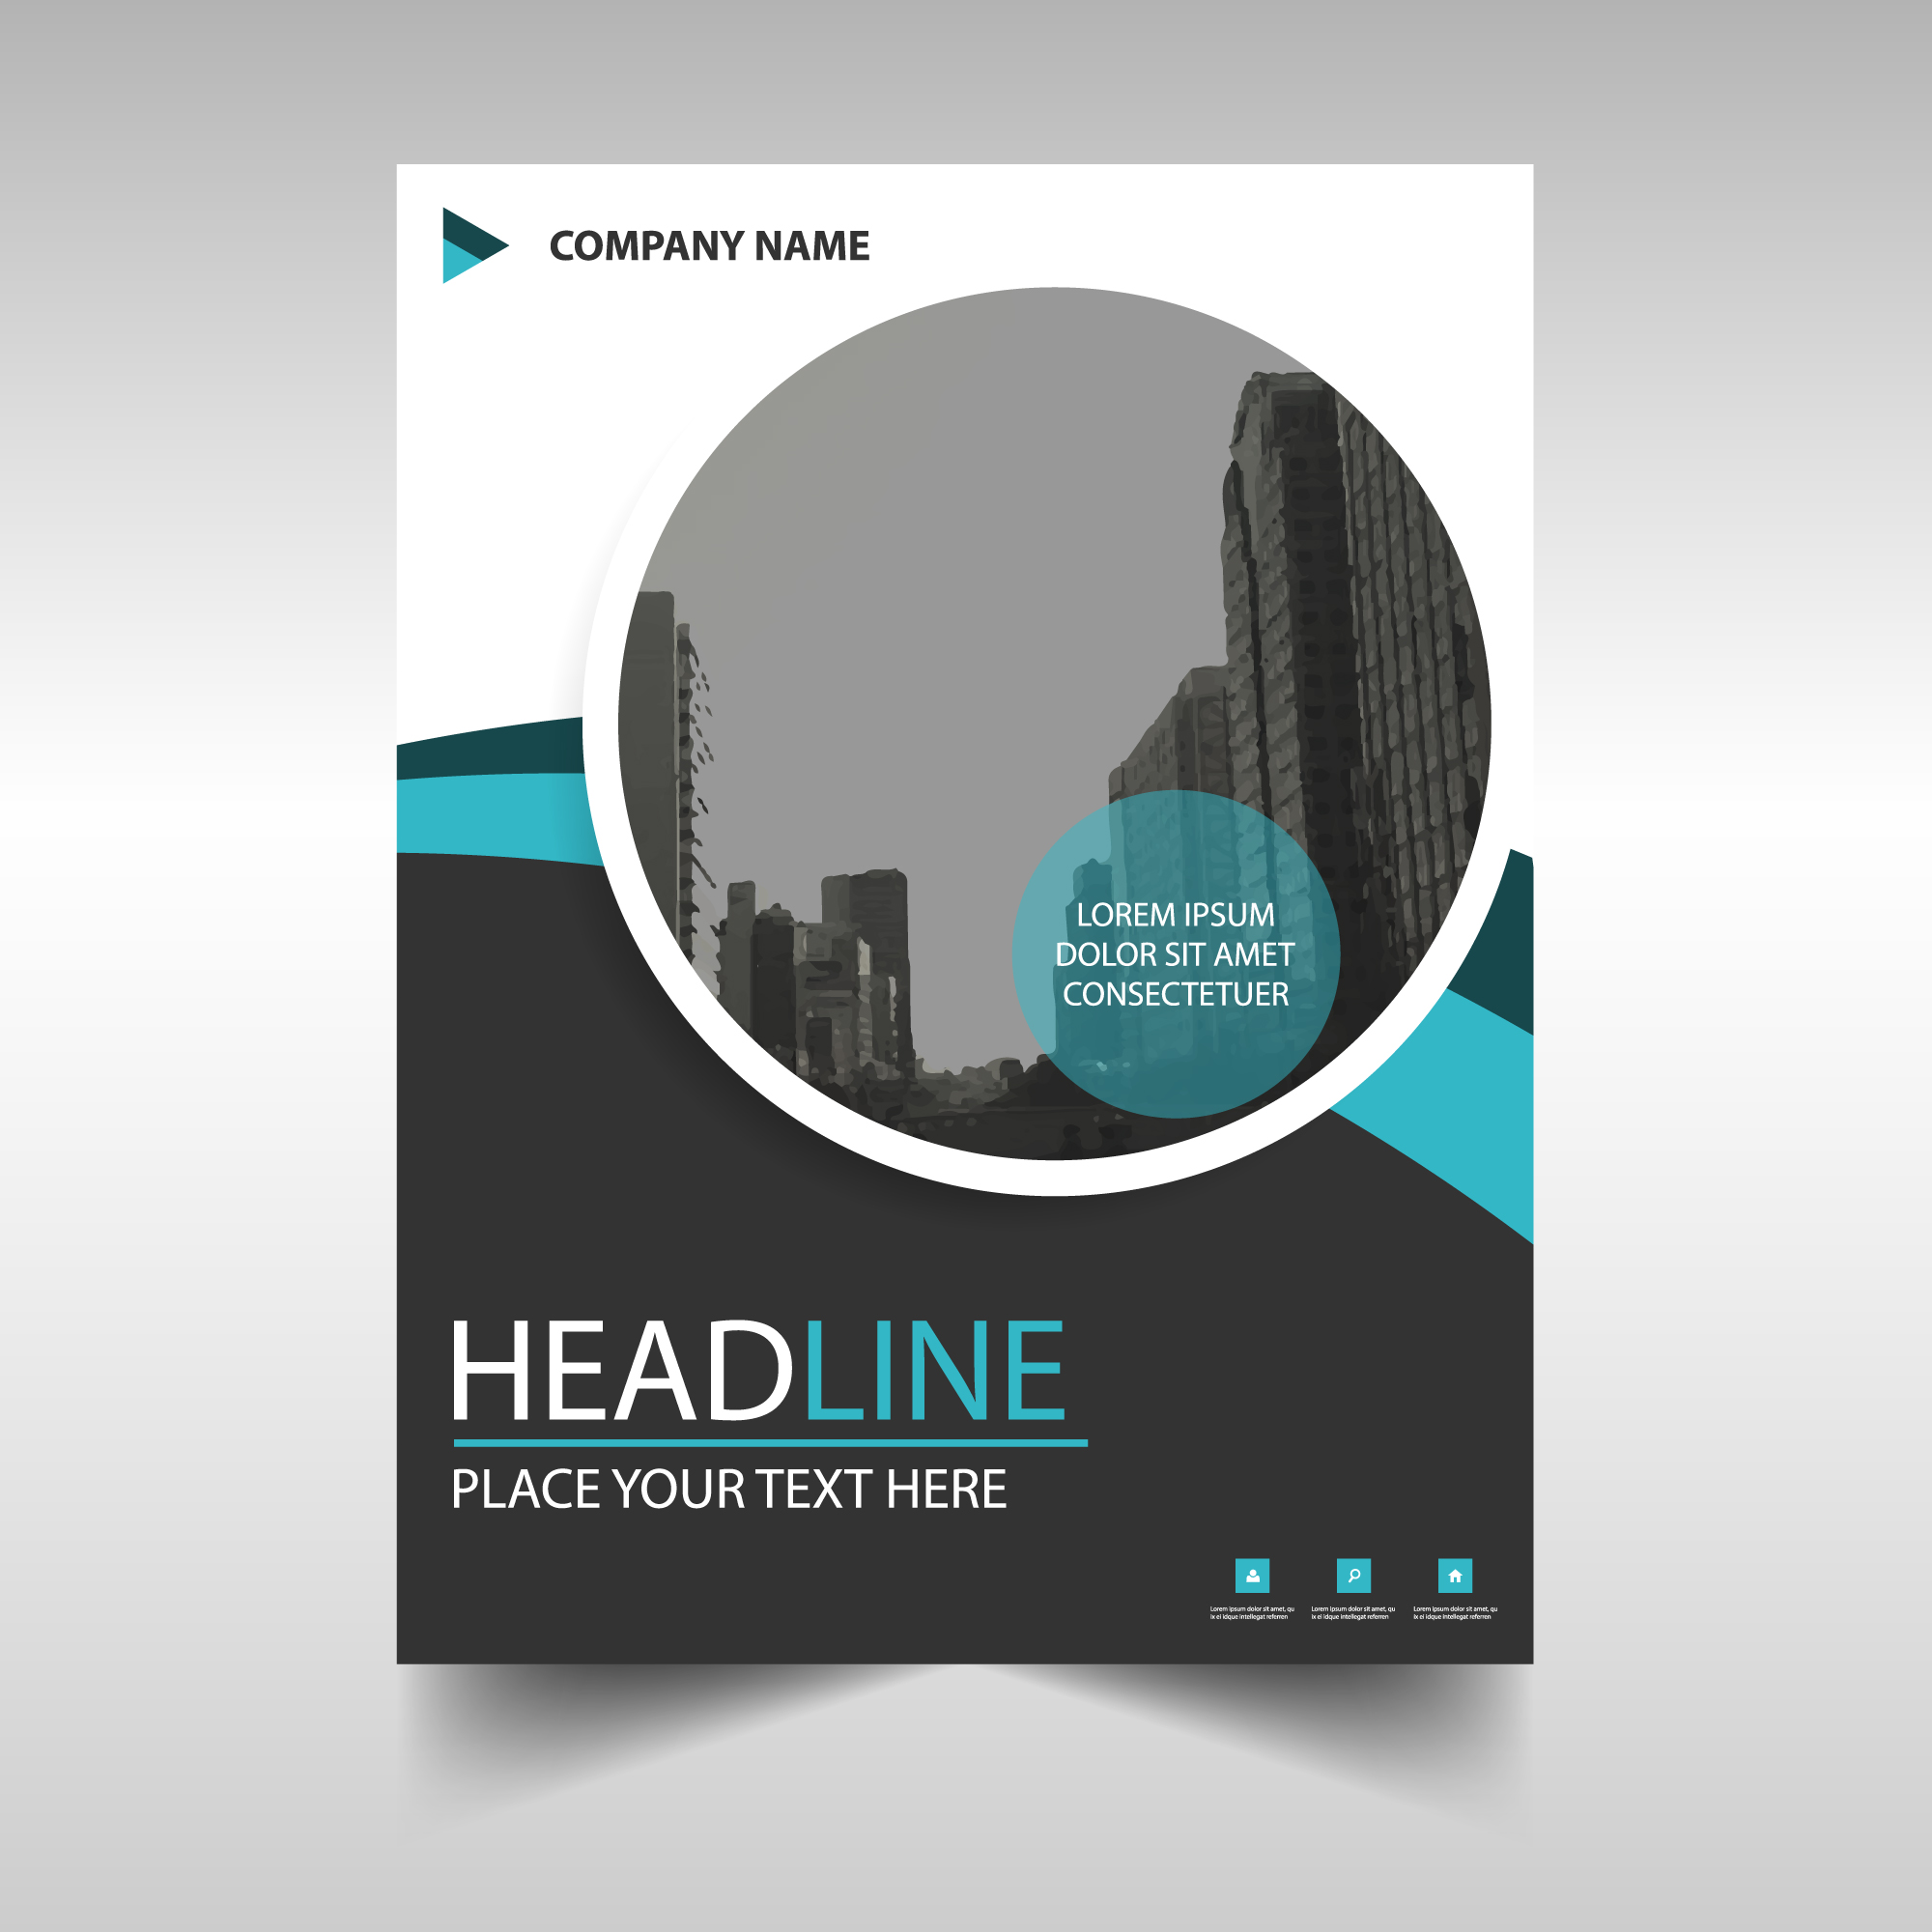 Round modern annual report template